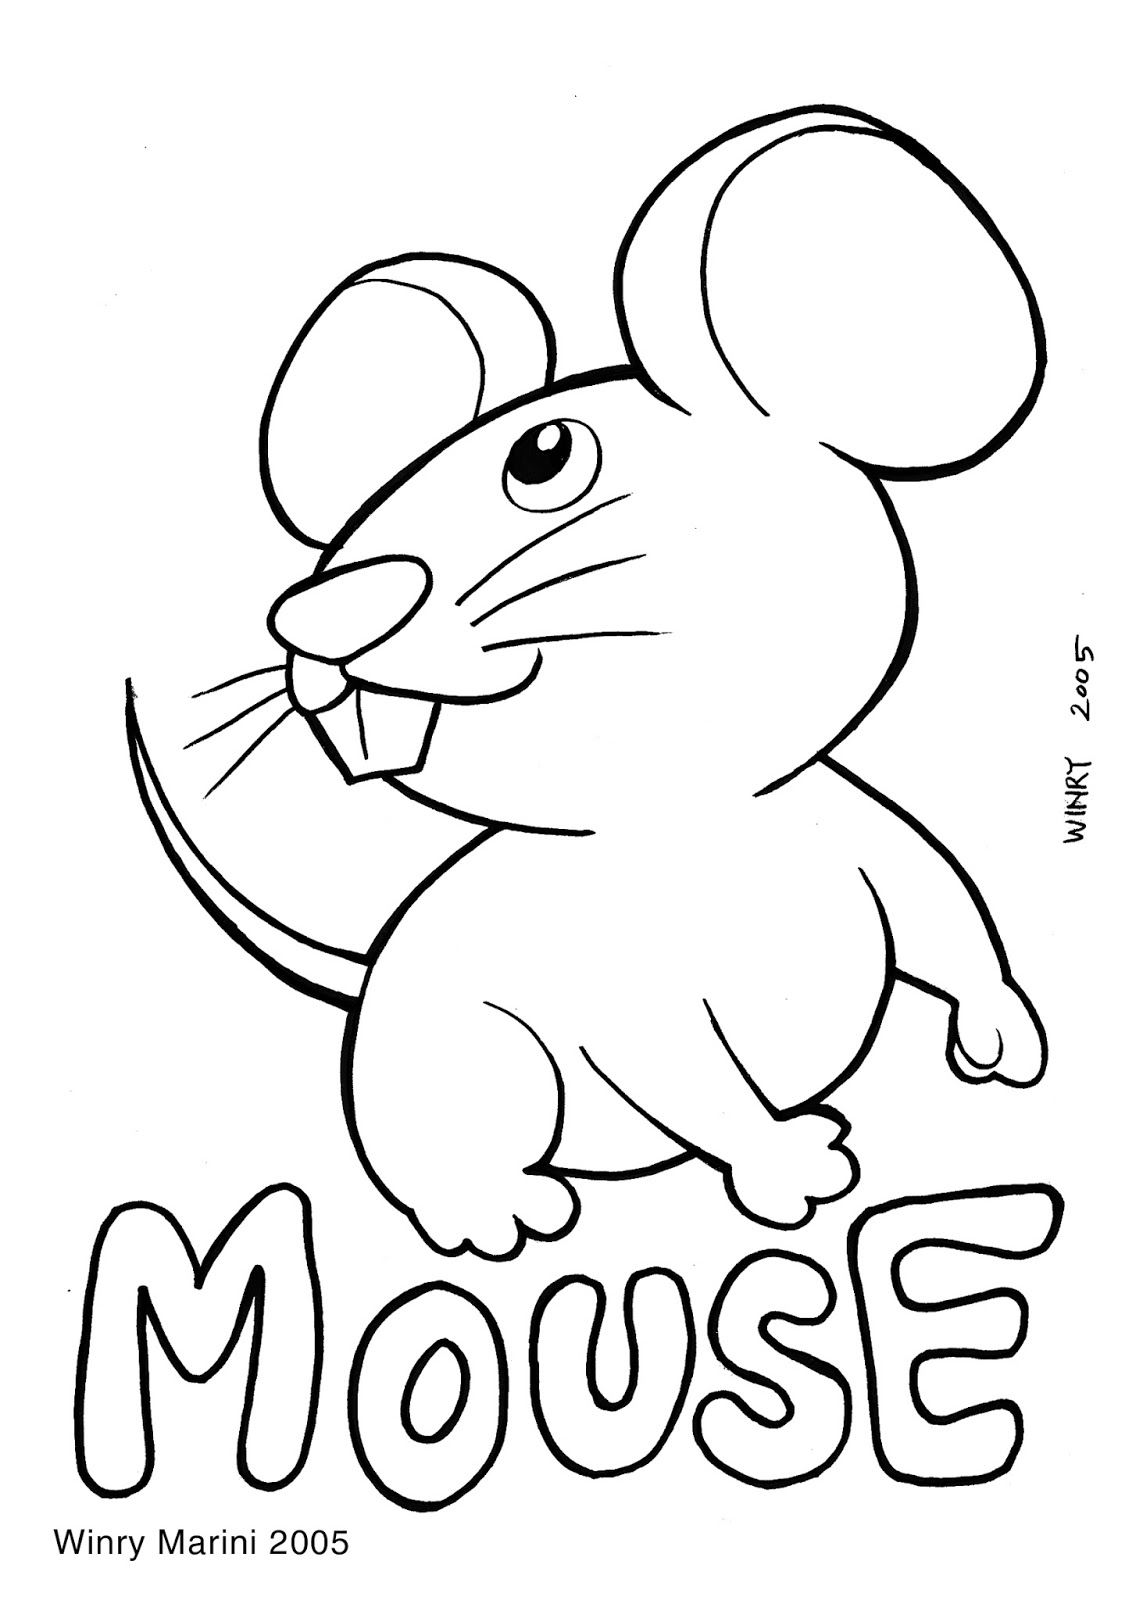 Mouse Coloring Page by Winry Marini 2005